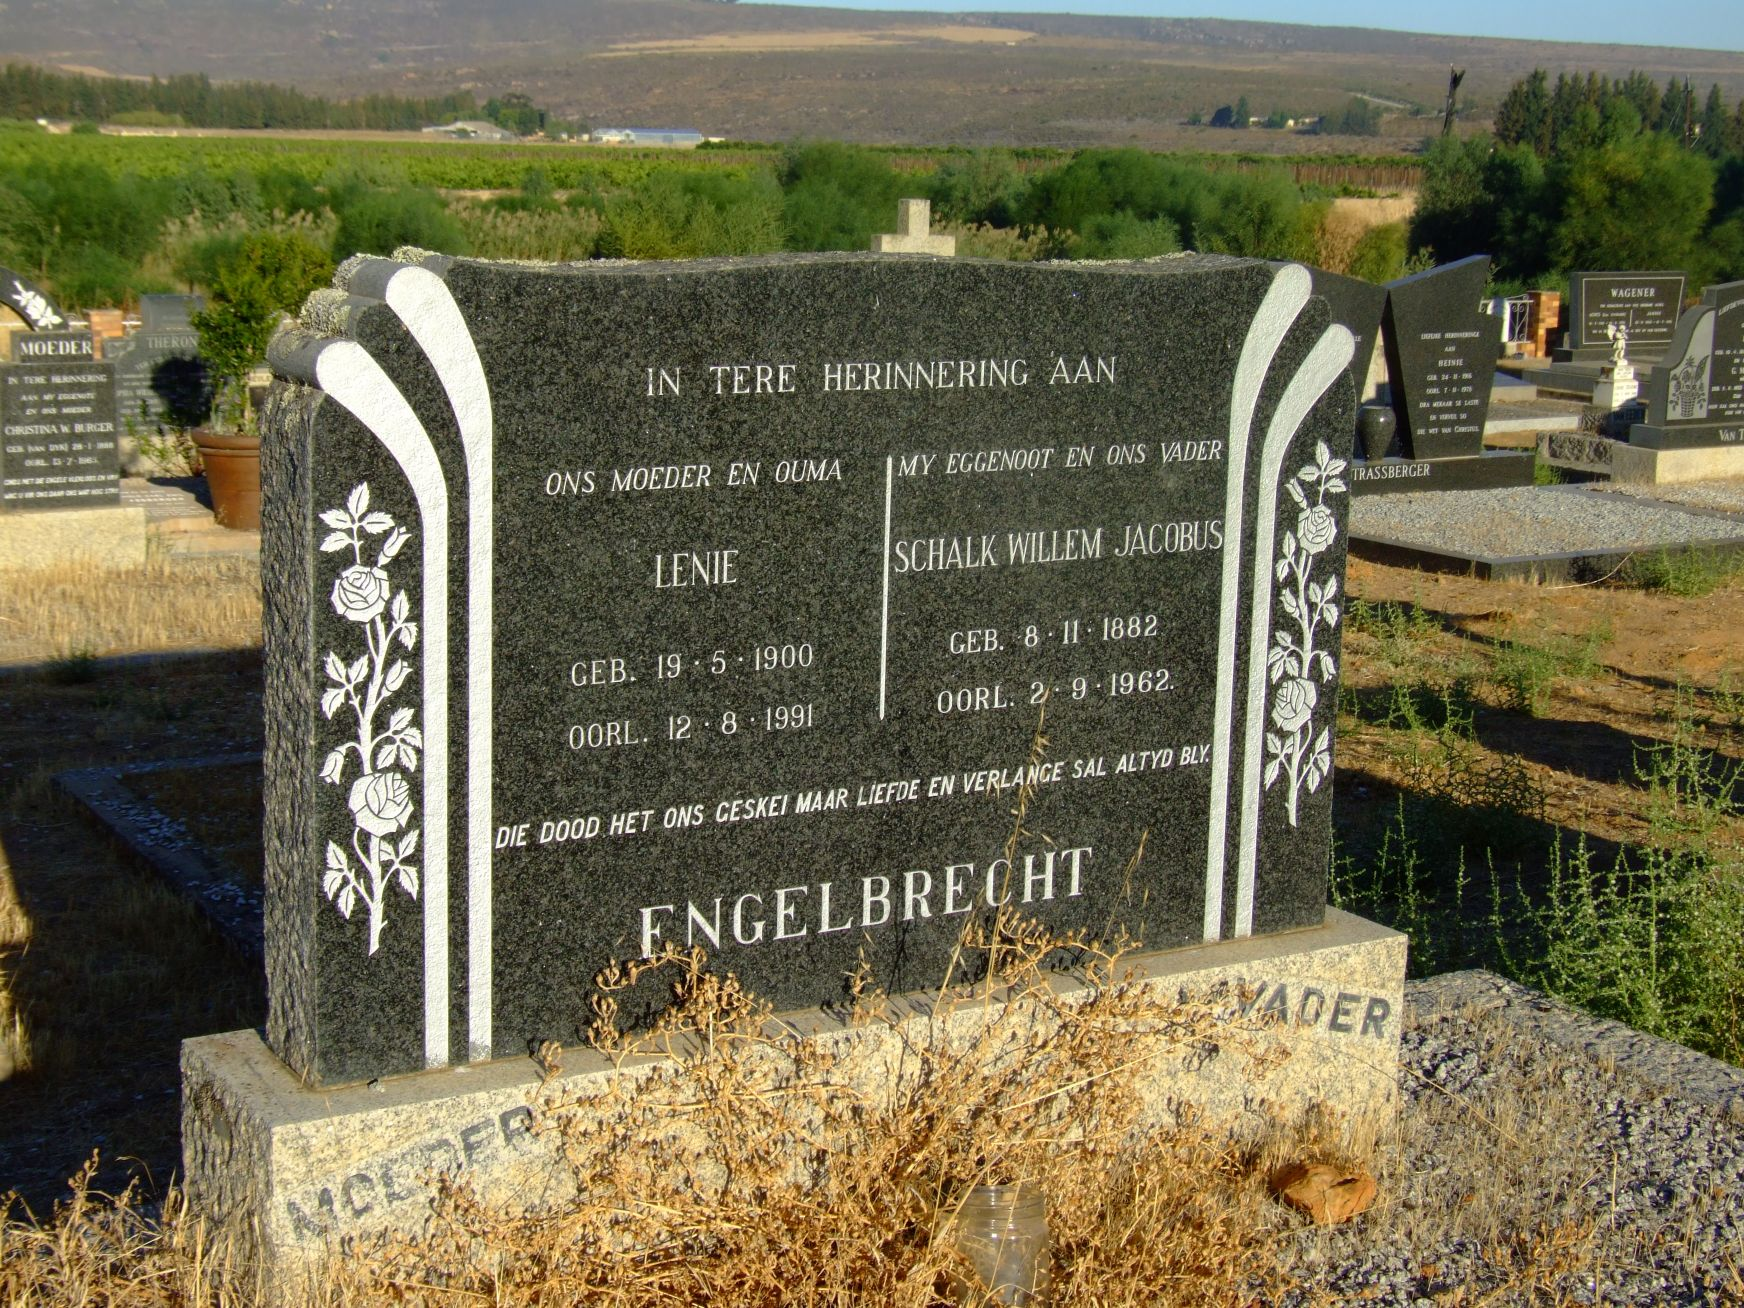 Engelbrecht, Lenie and Engelbrecht, Schalk Willem Jacobus